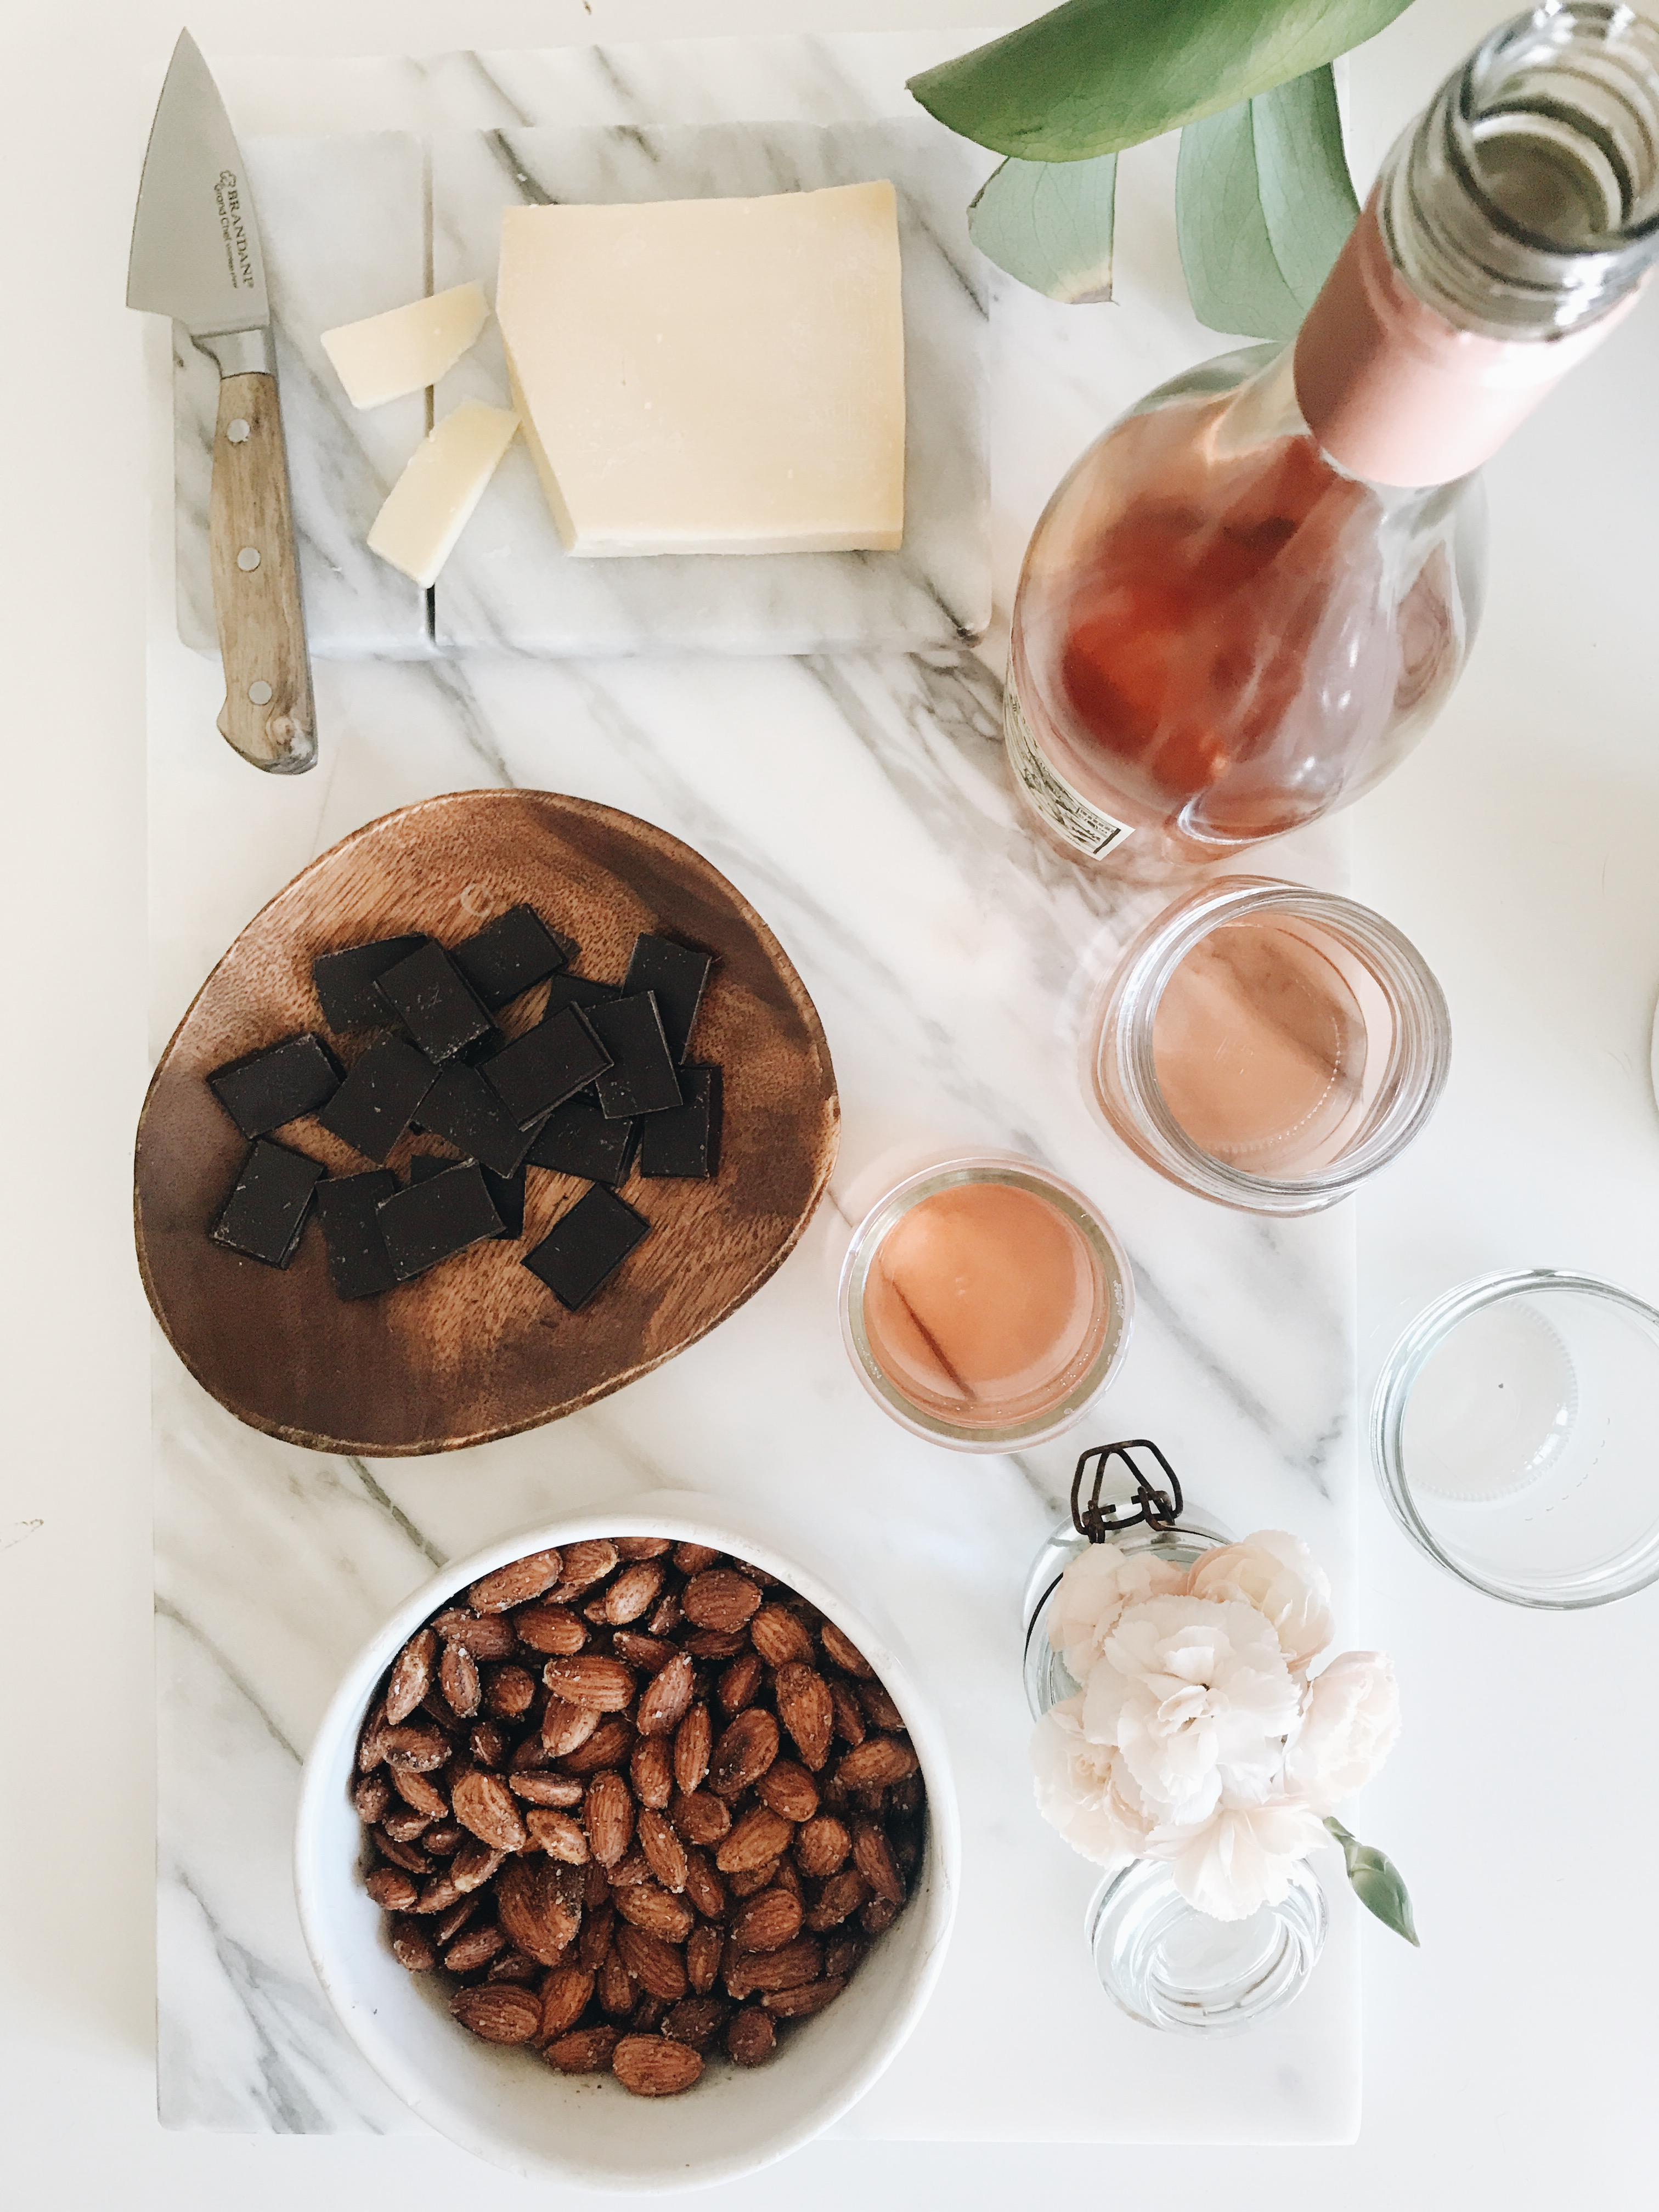 rosé, almonds, chocolate and cheese